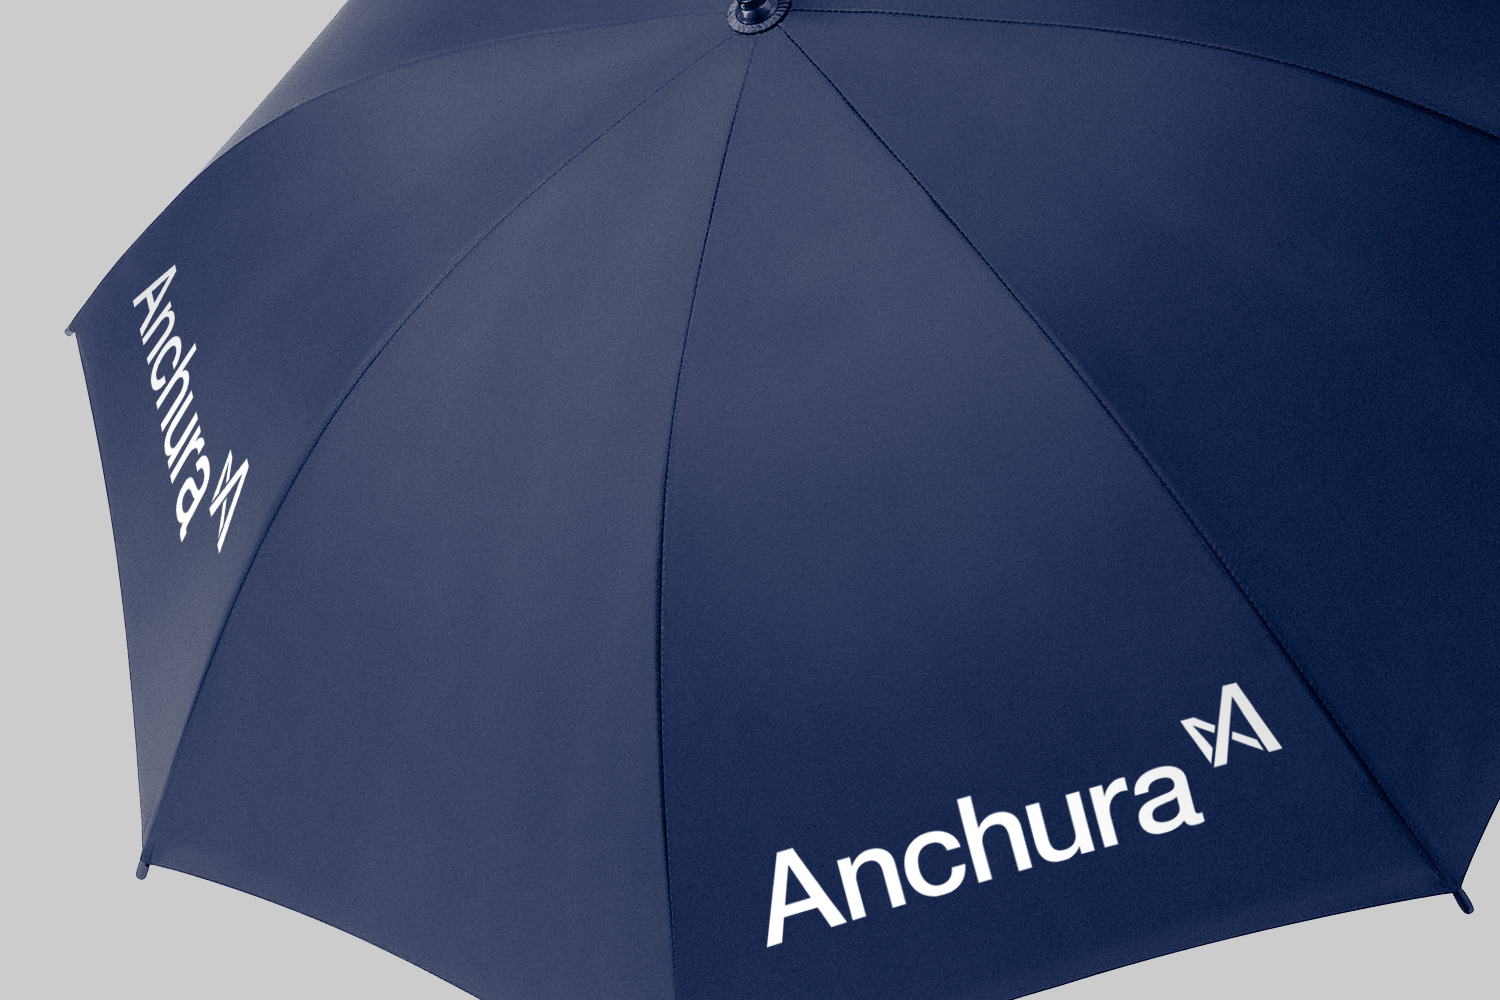 Anchura umbrella